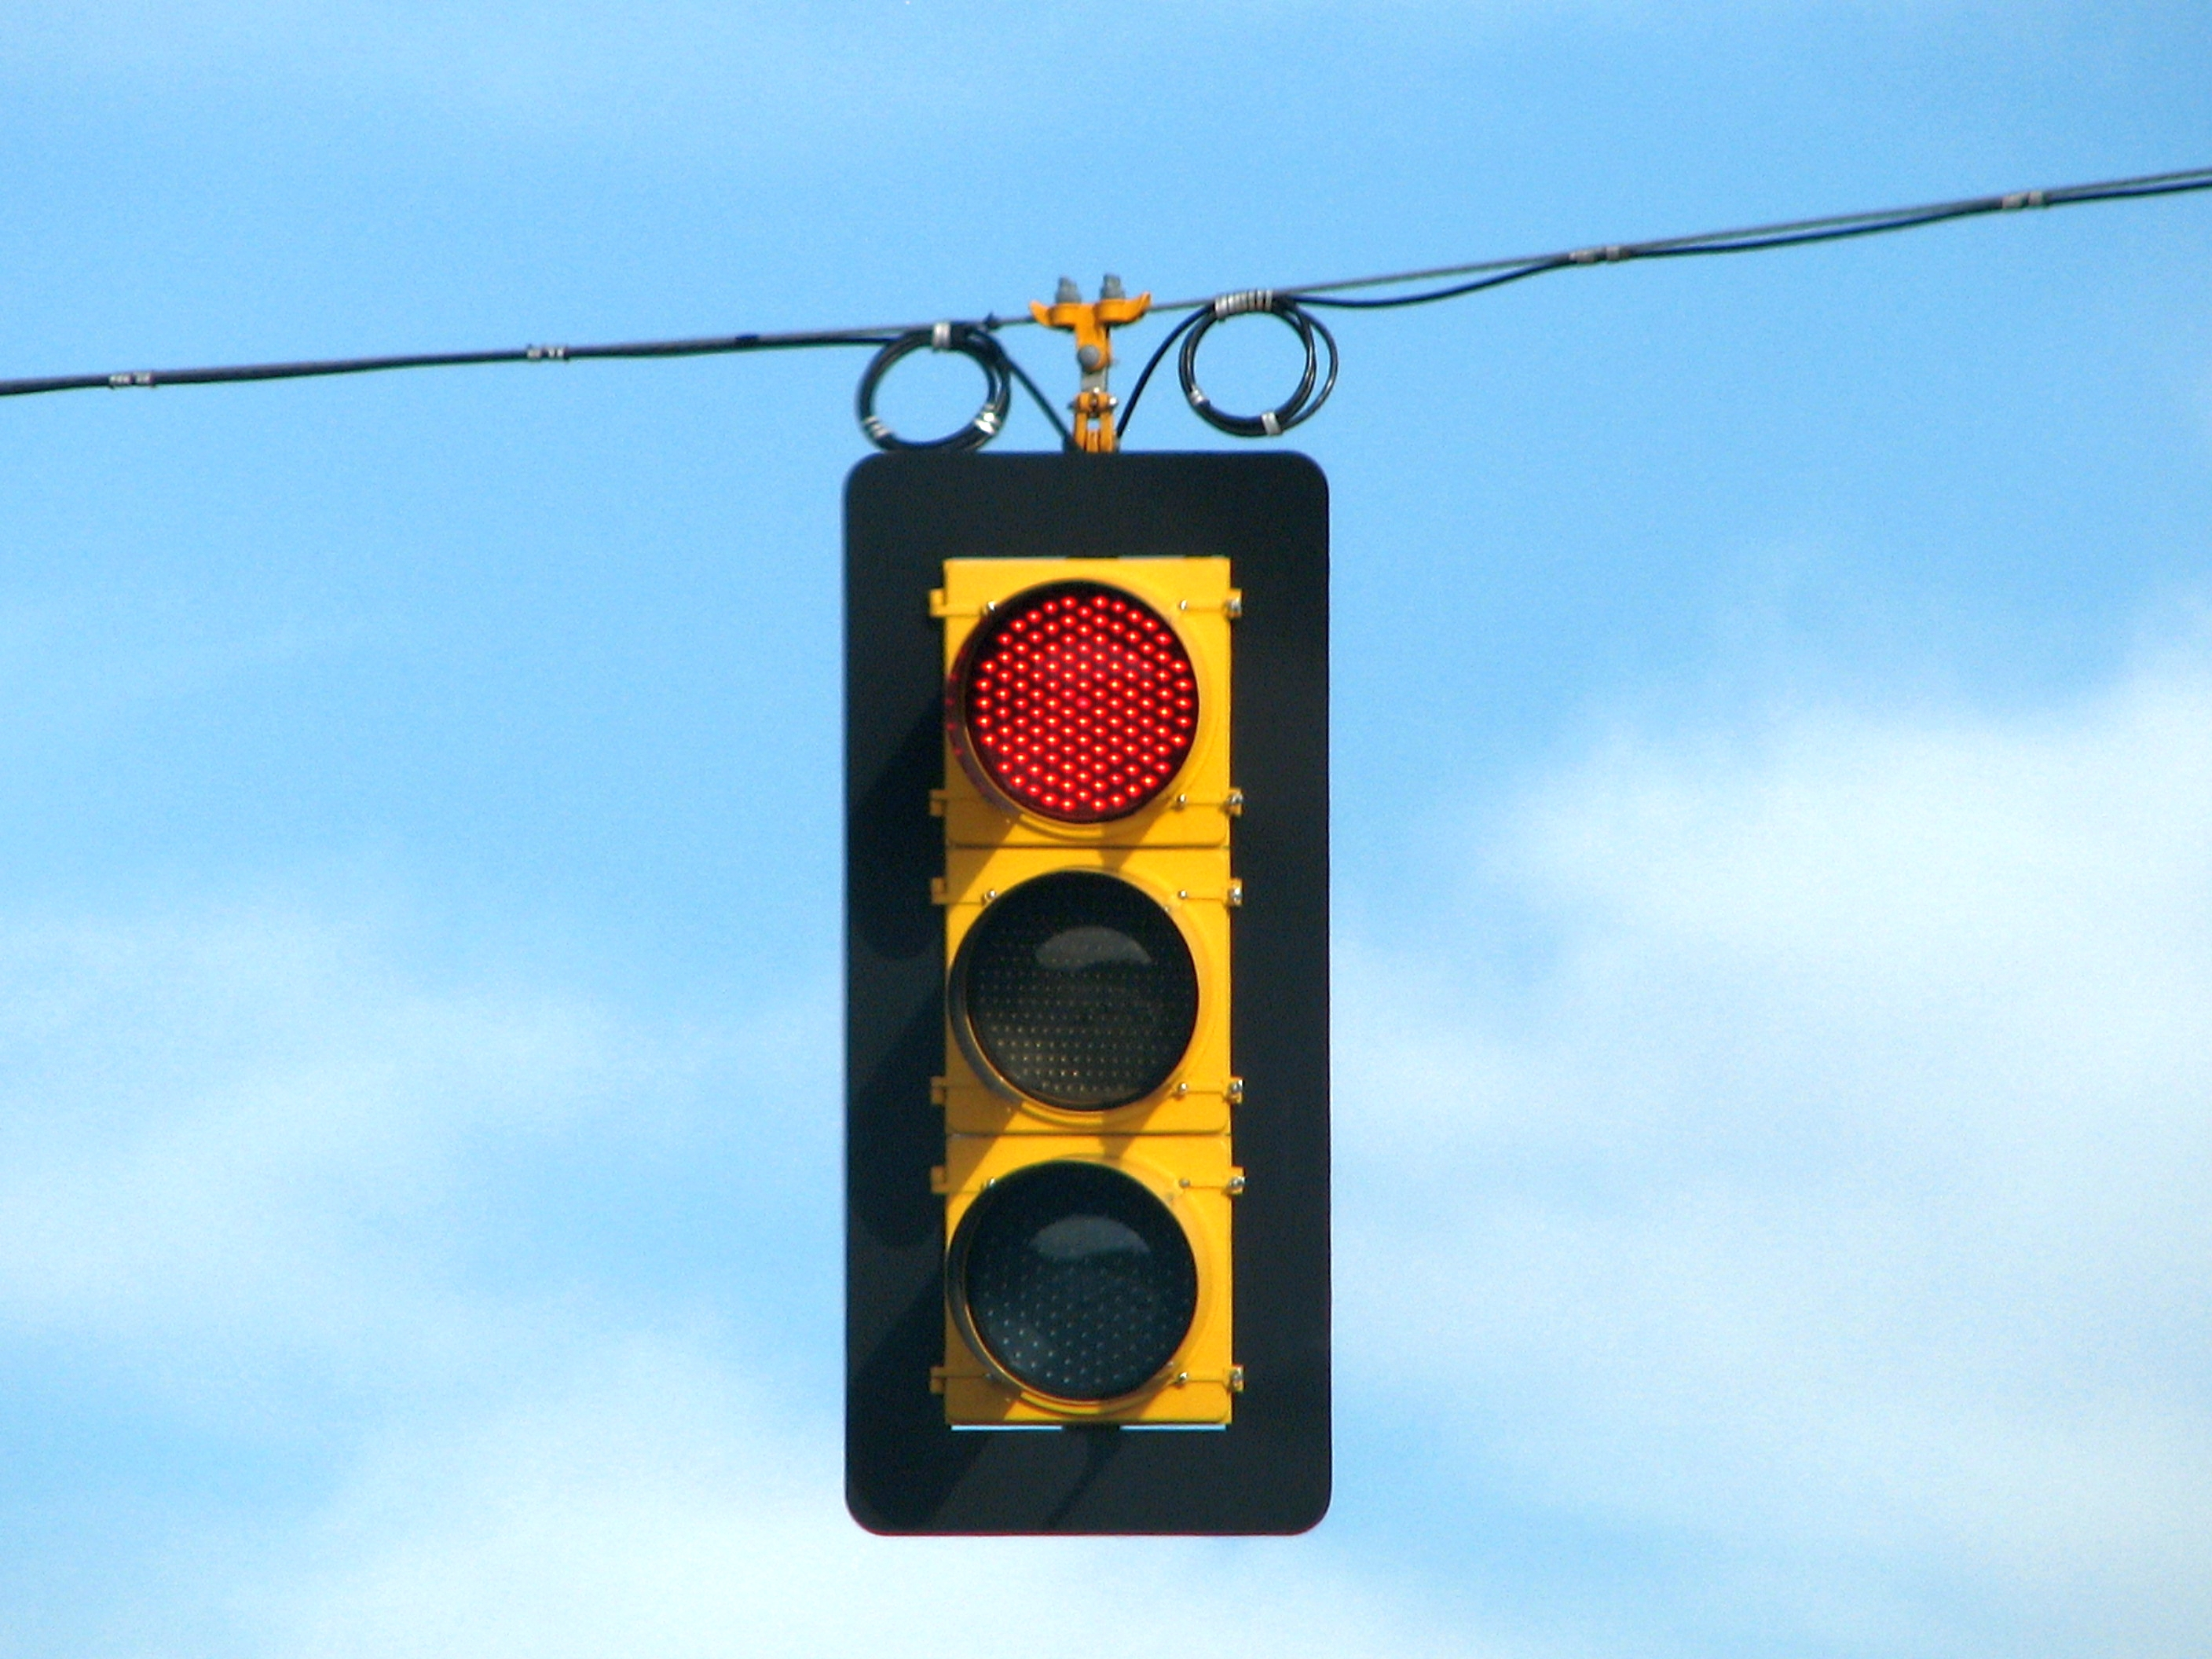 LED traffic light on red.jpg